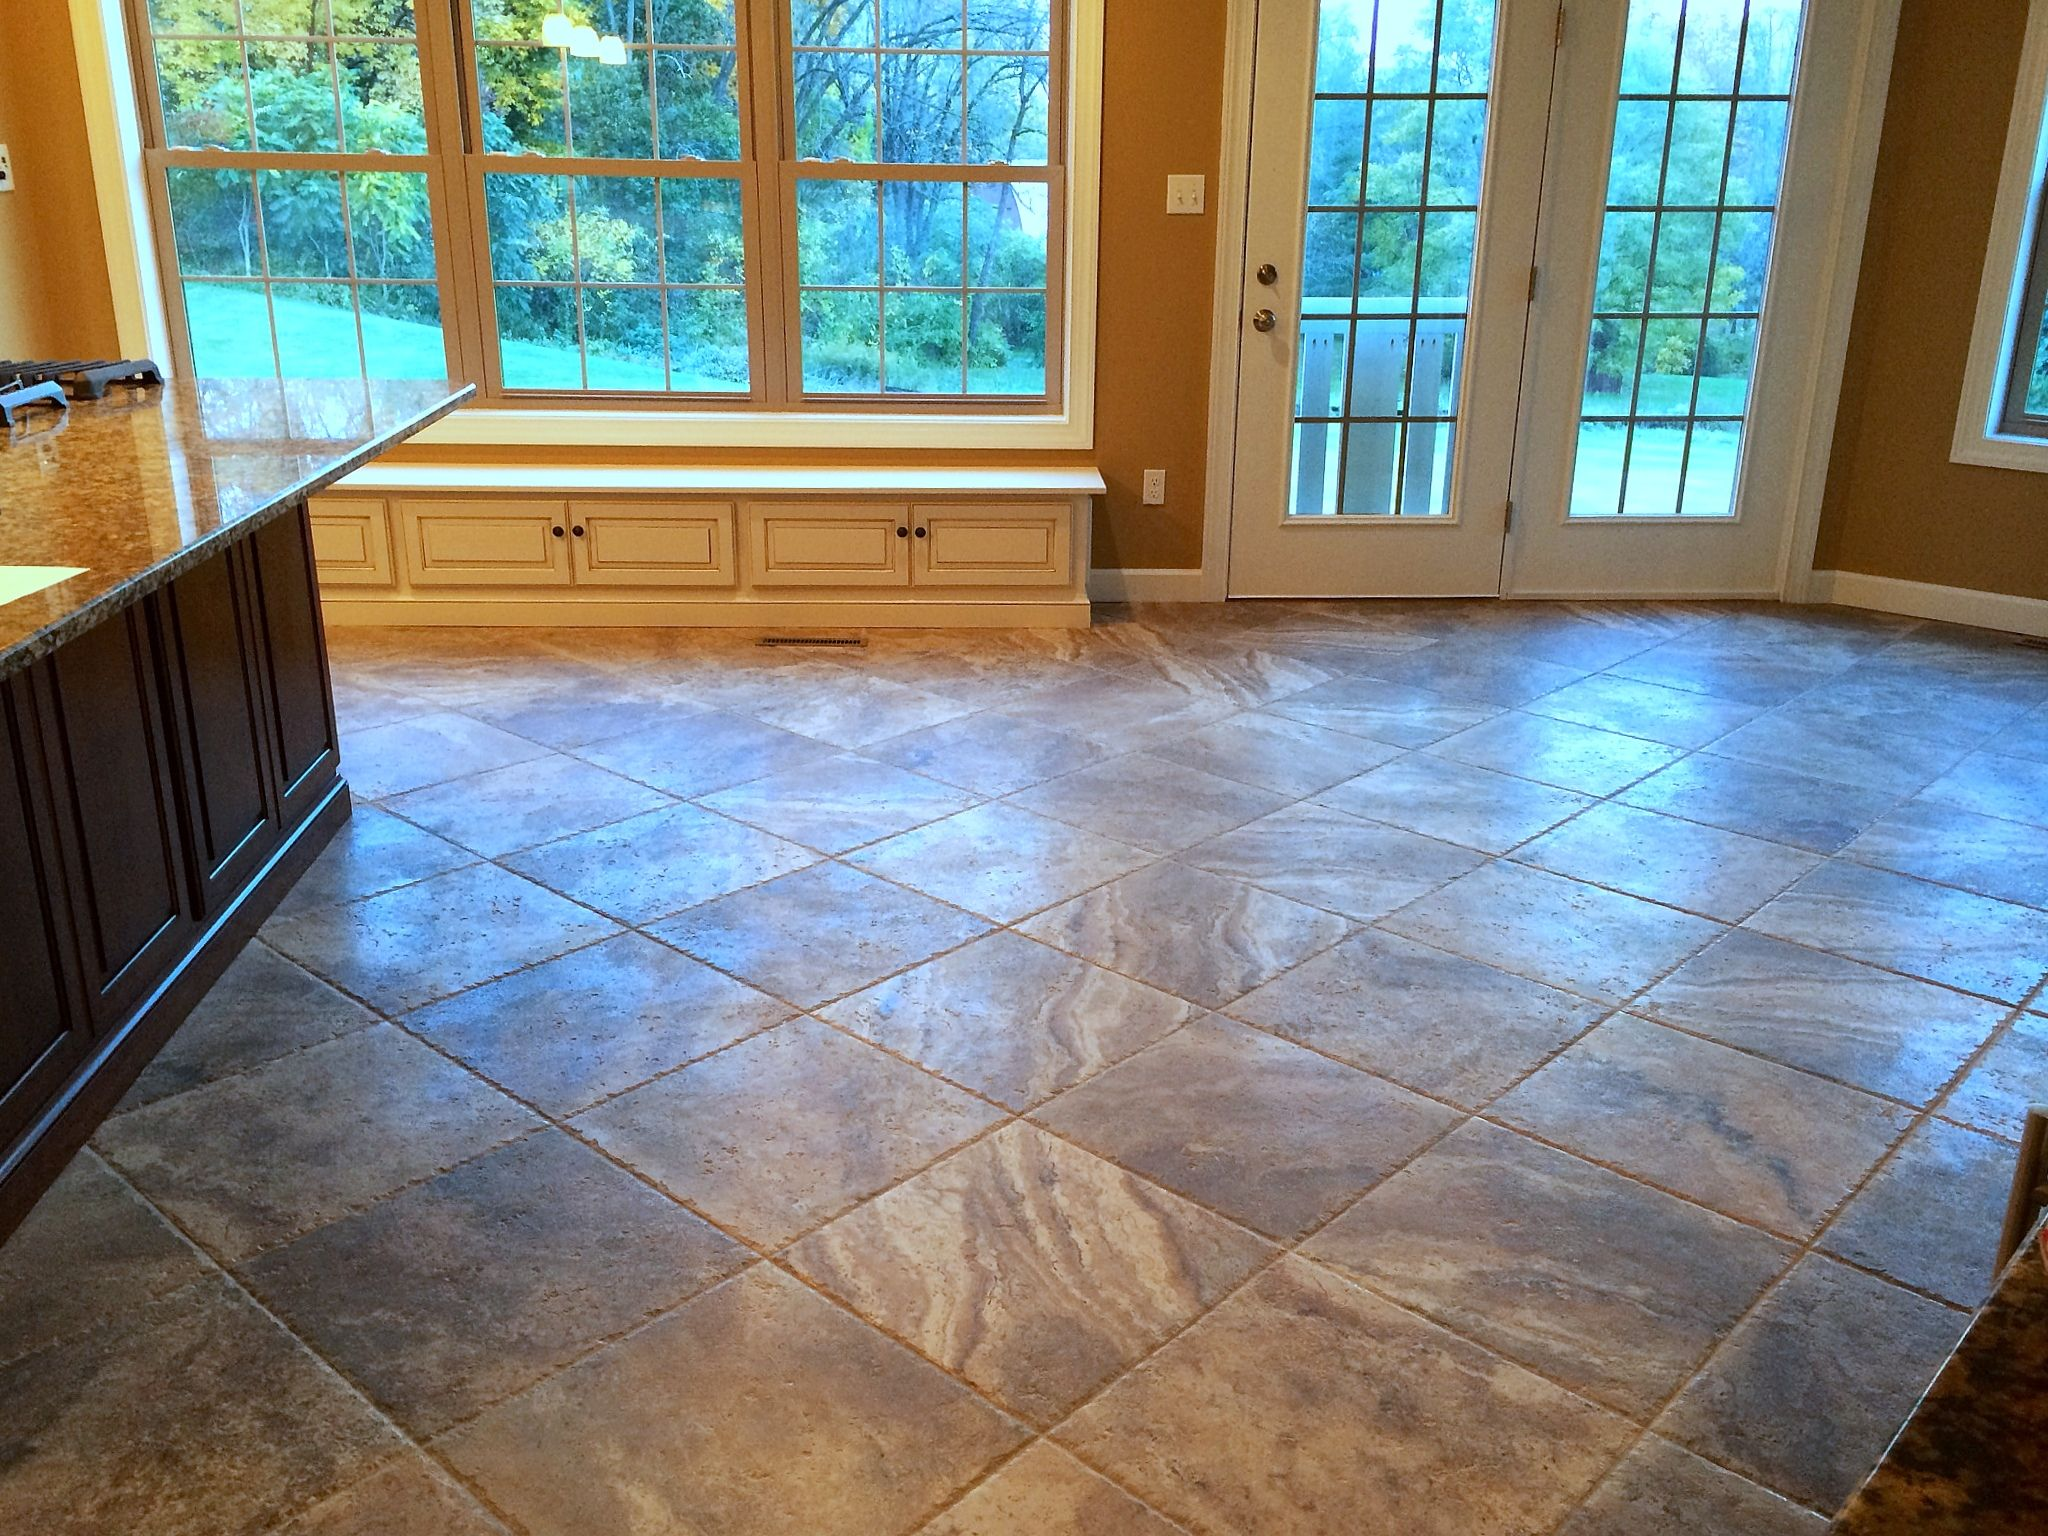 Marazzi 20 x 20 Archaeology, Color: Chaco Canyon | Our Creative Work ...